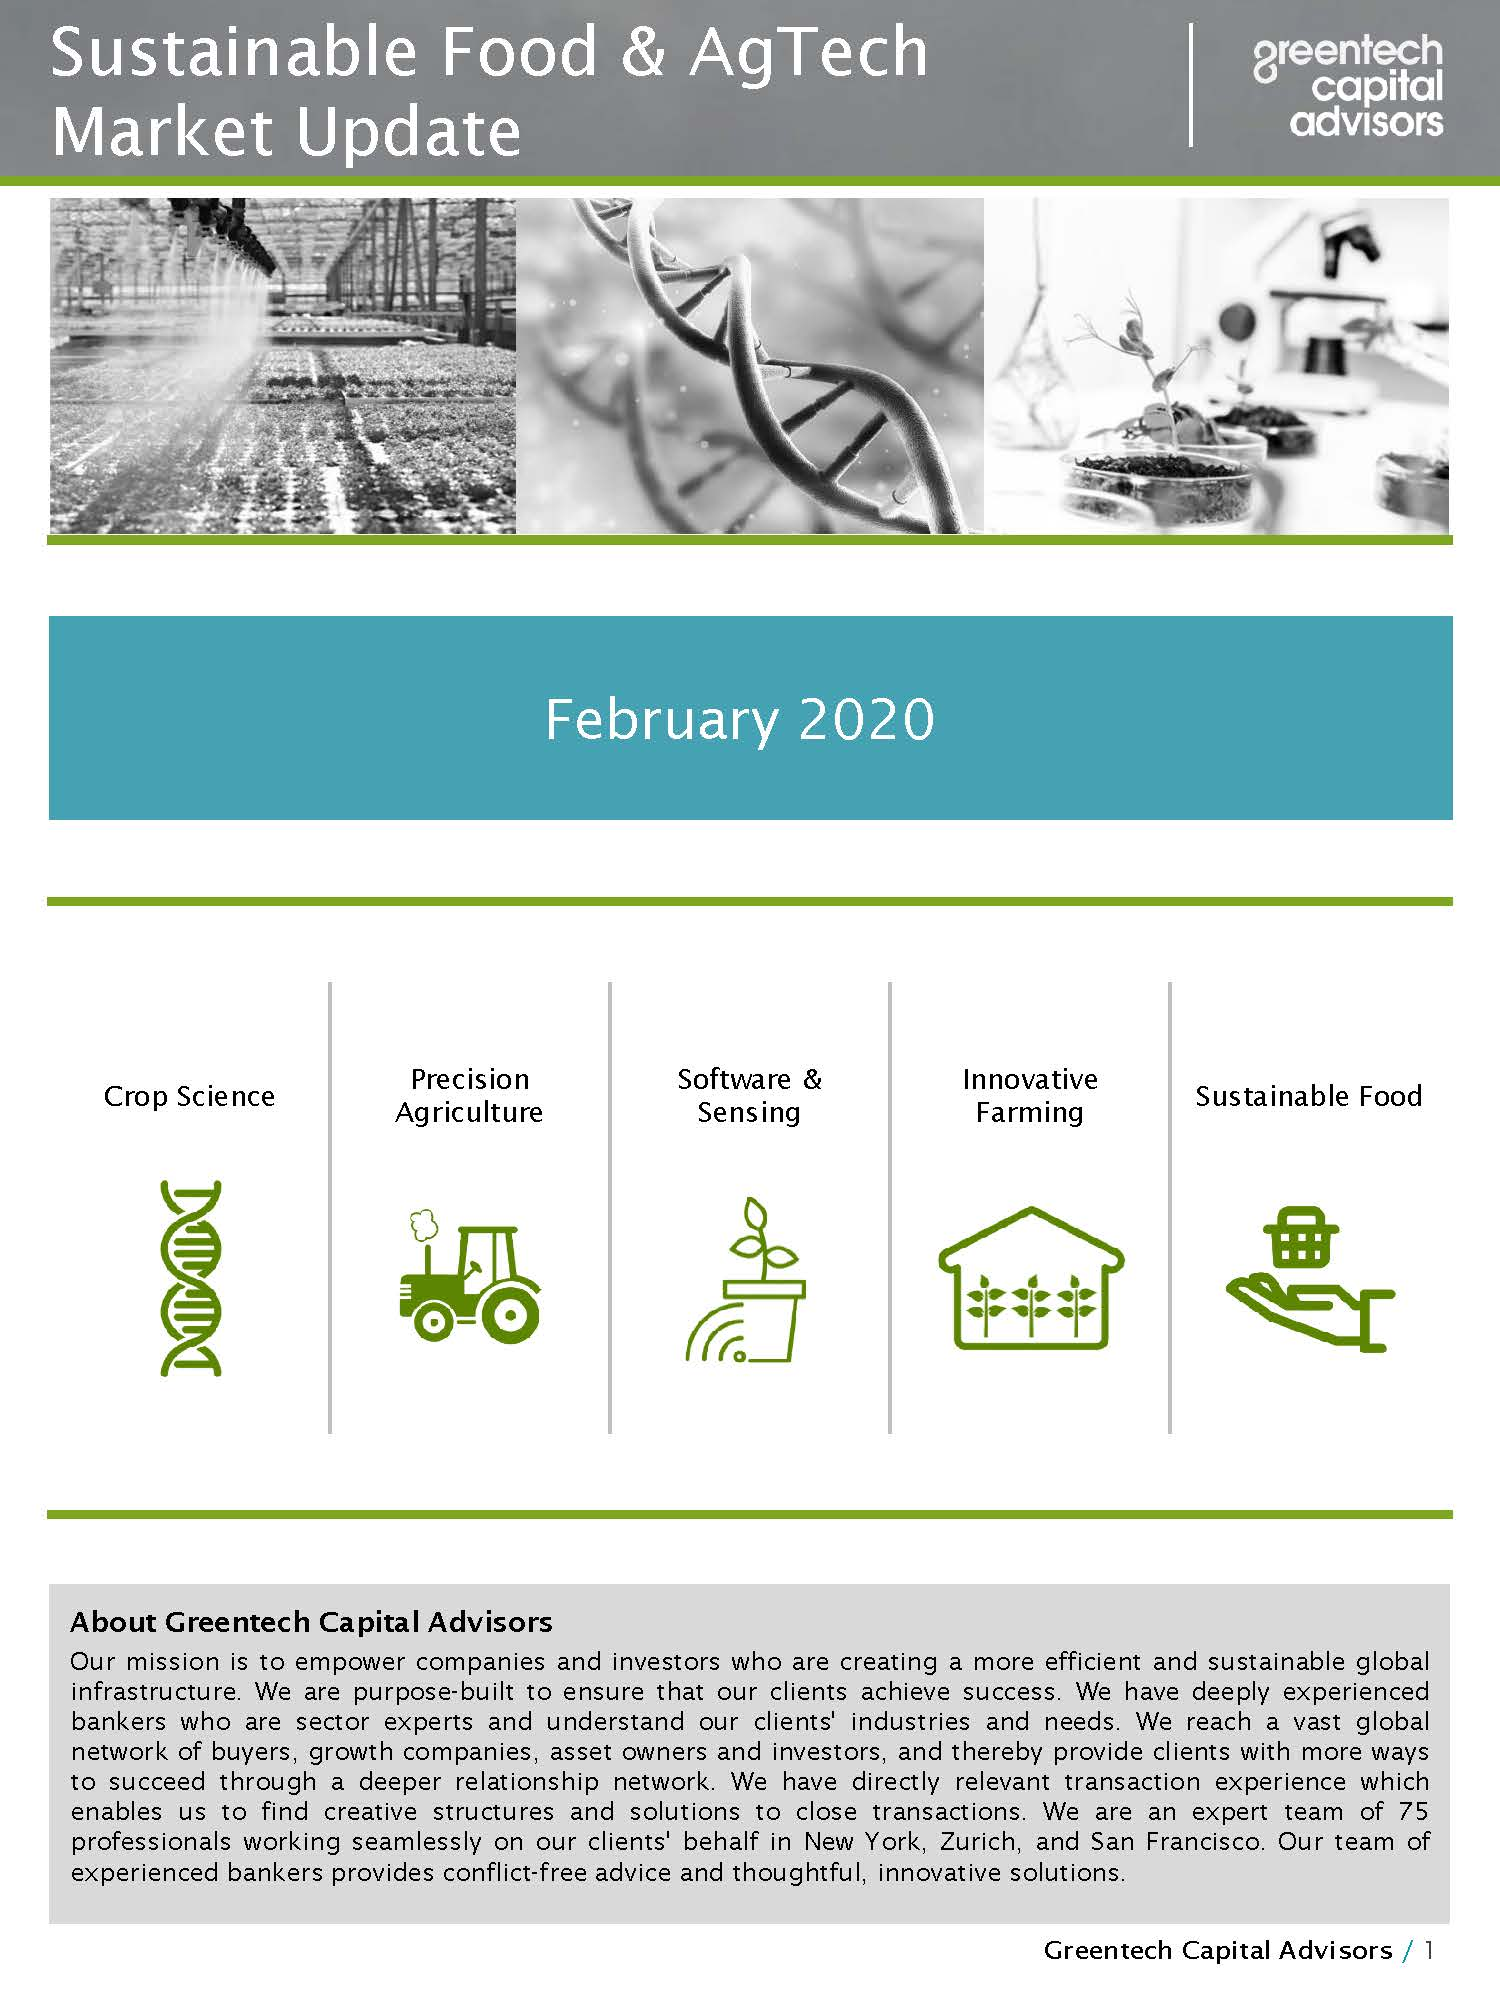 Sustainable Food & AgTech Market Update Newsletter - February 2020